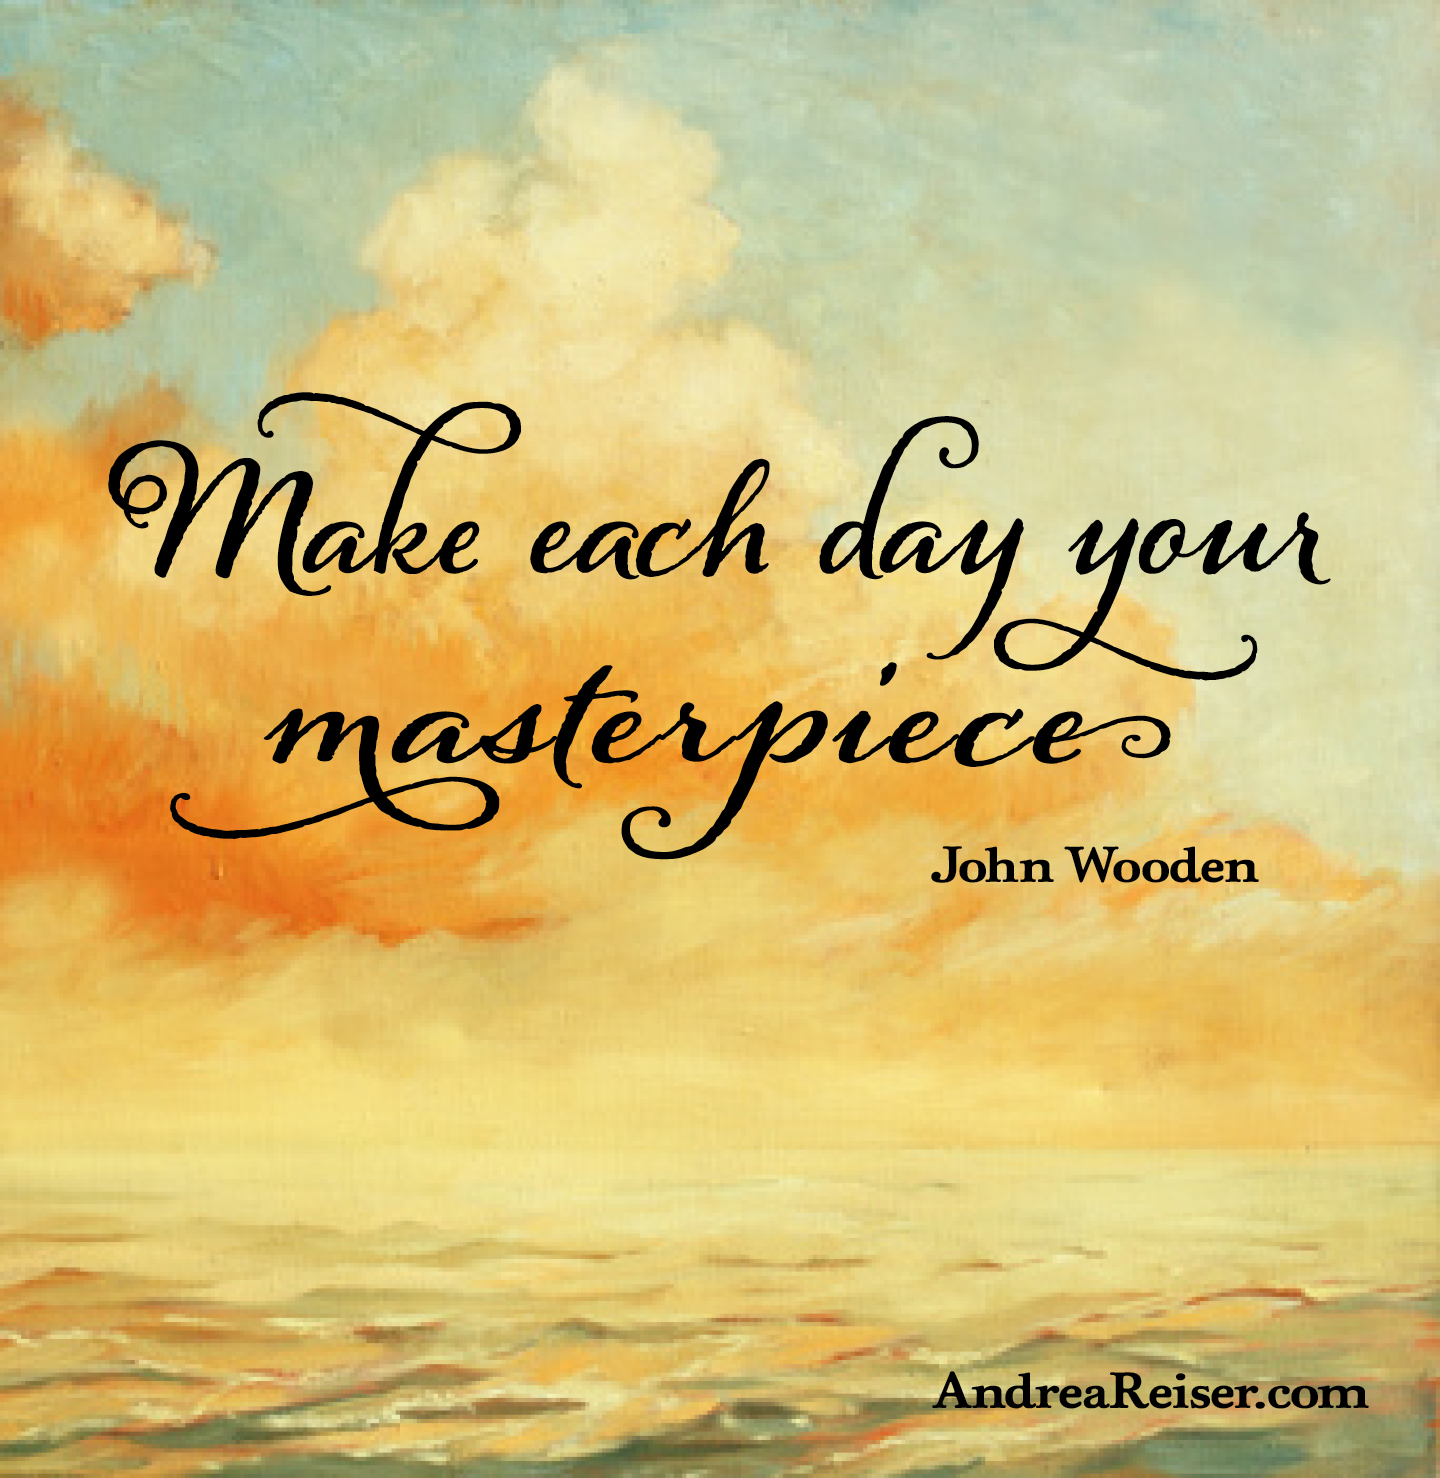 Make Each Day Your Masterpiece Andrea Reiser